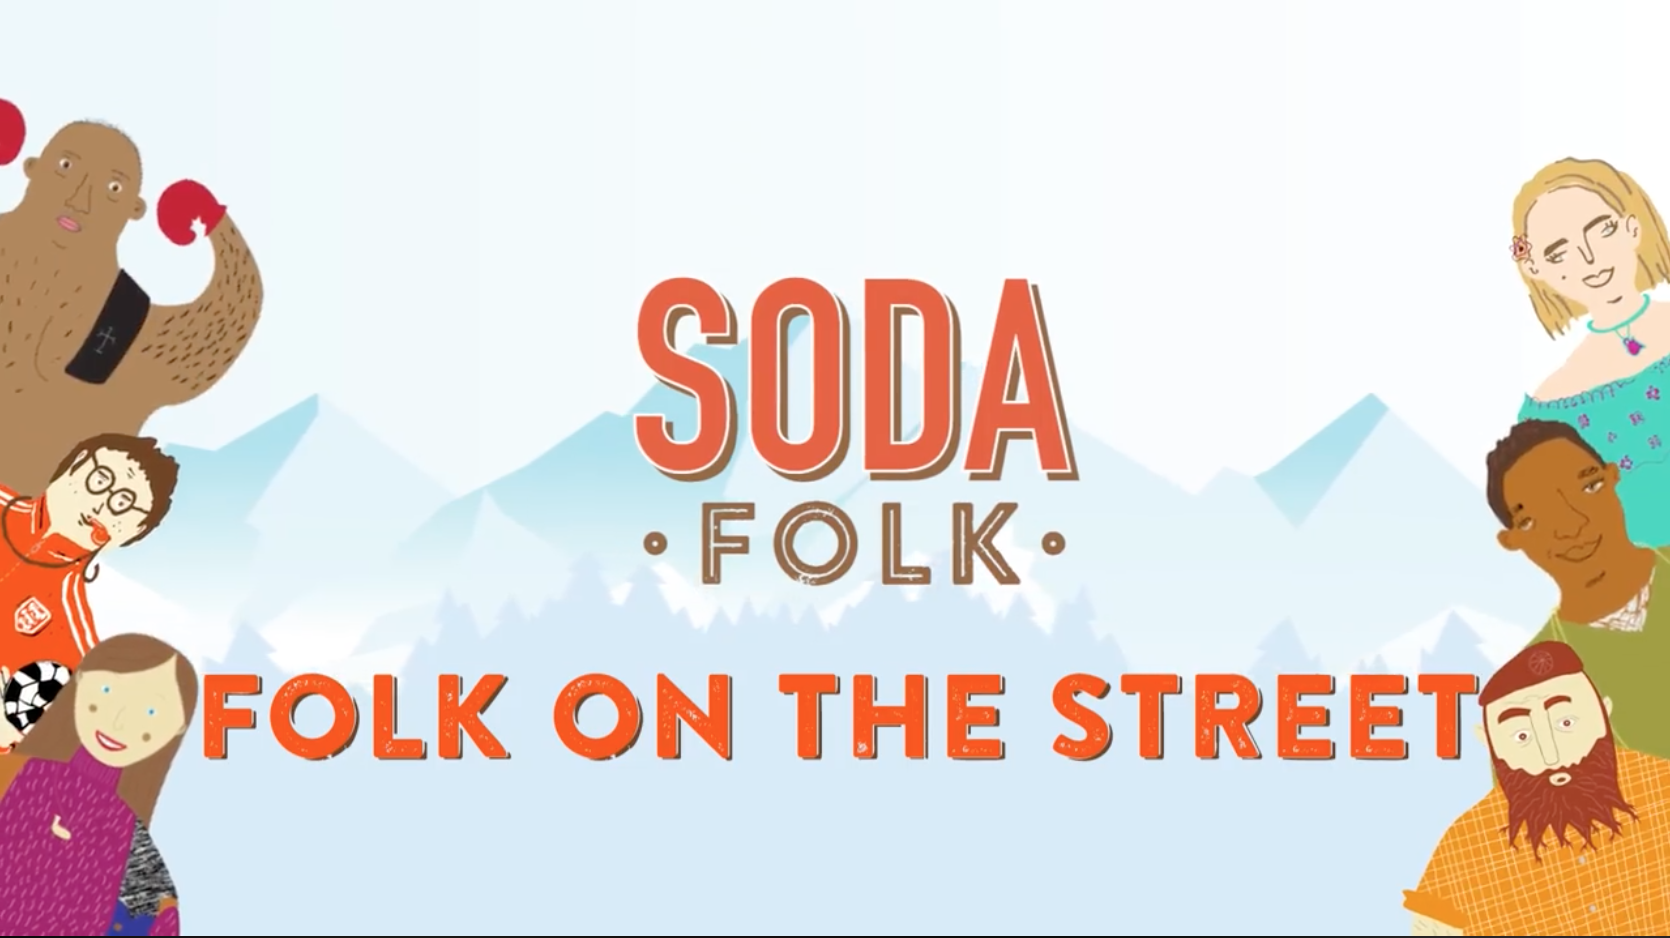 Folk on the Street: taking social out of the office & onto the streets